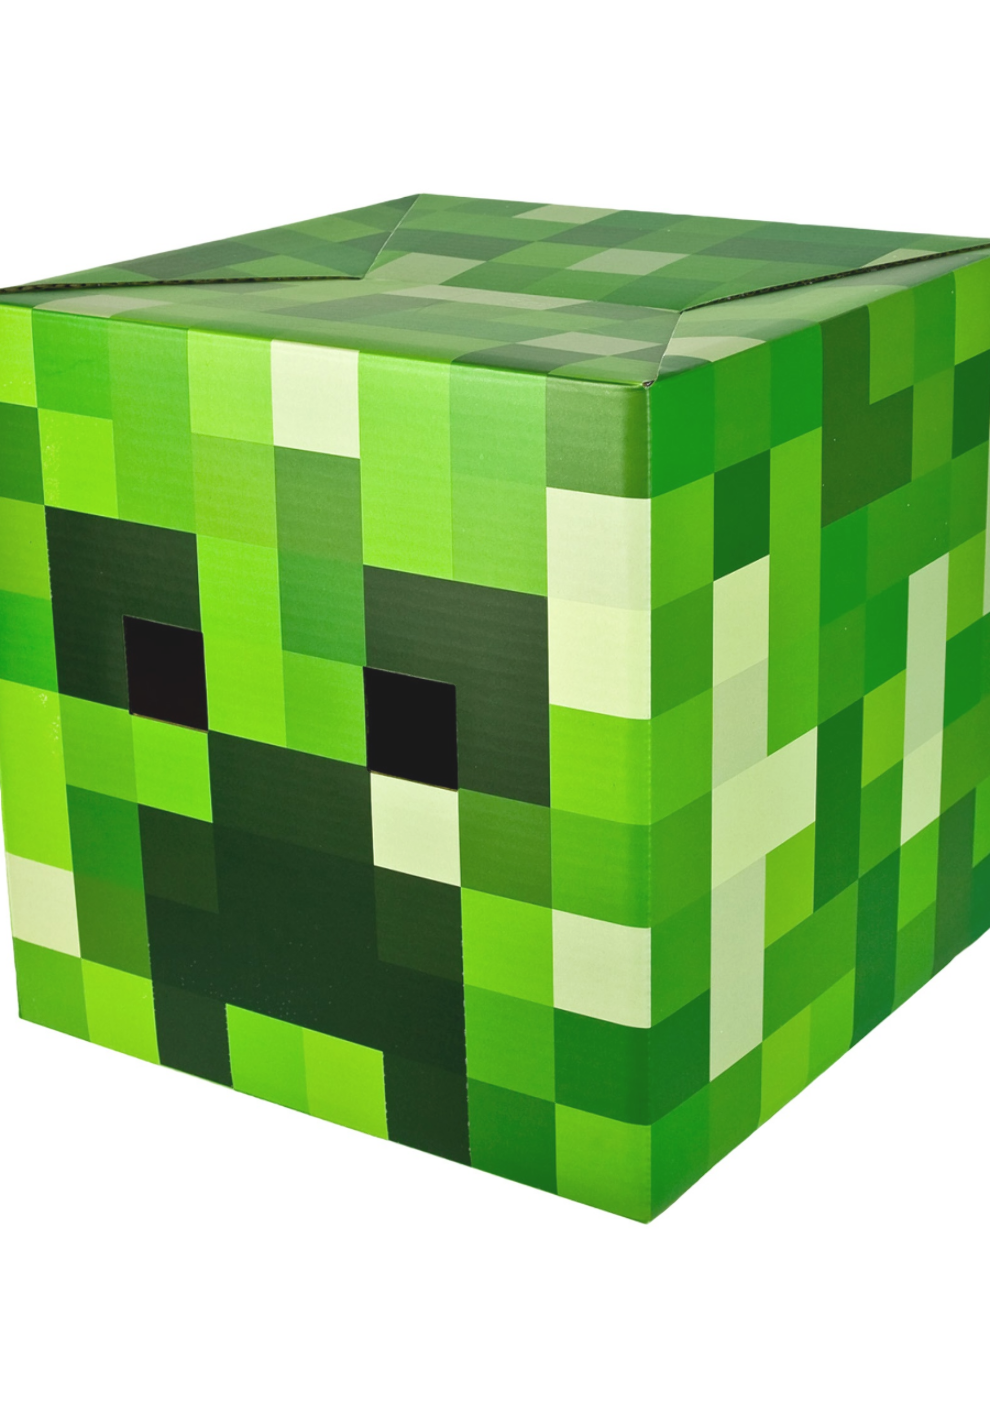 Pin By Lawrence Bowman On Bendy And The Ink Machine Minecraft Costumes Boys Valentines Boxes Creeper Minecraft